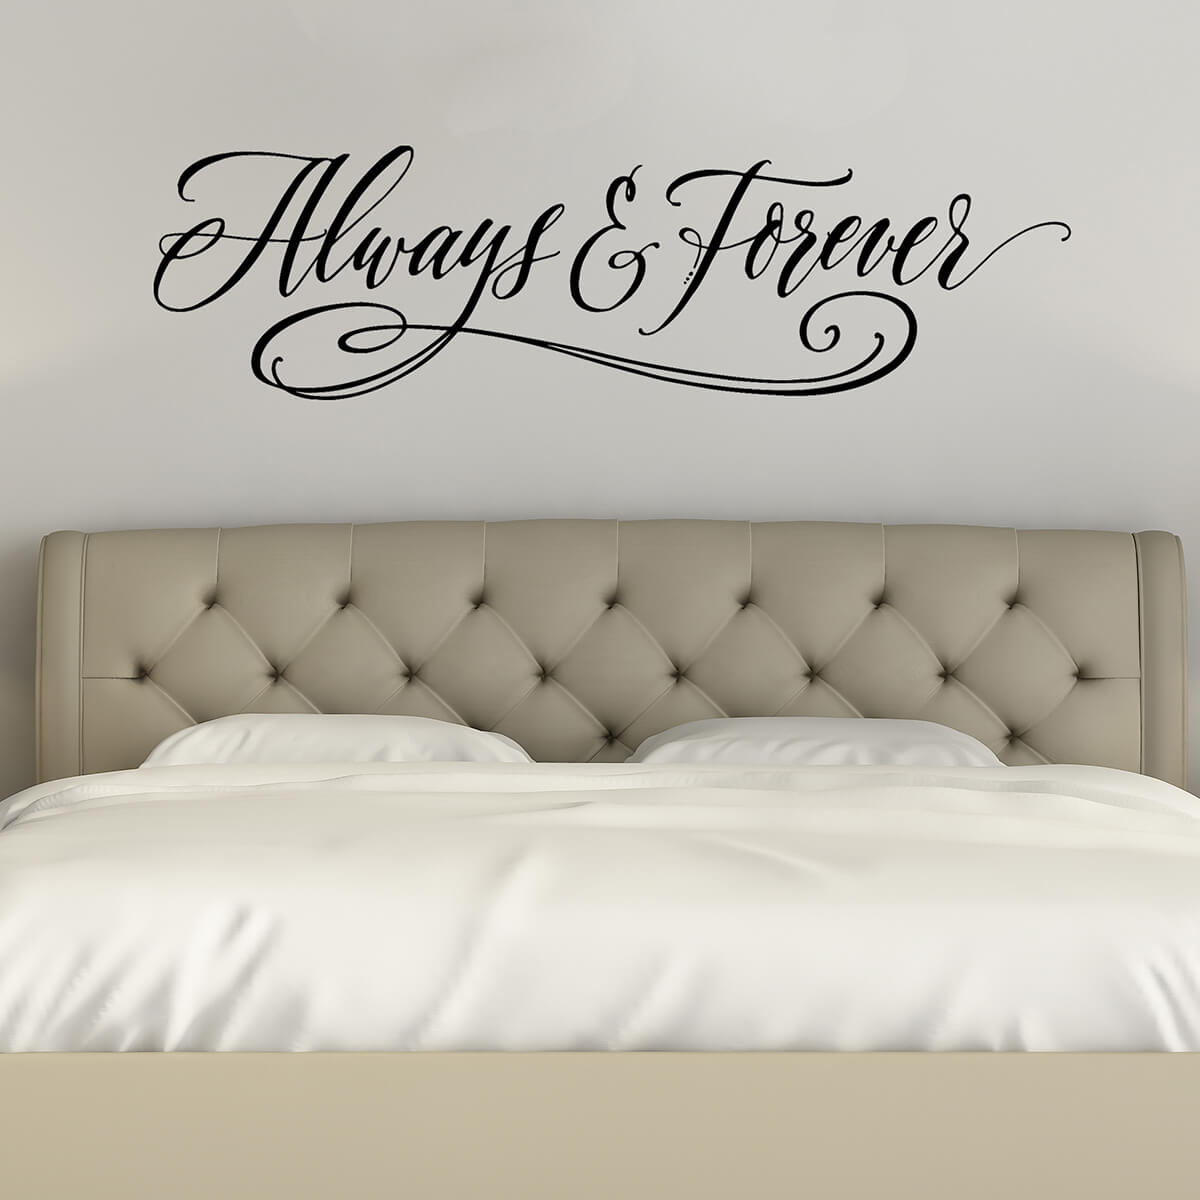 quoted wall-stickers